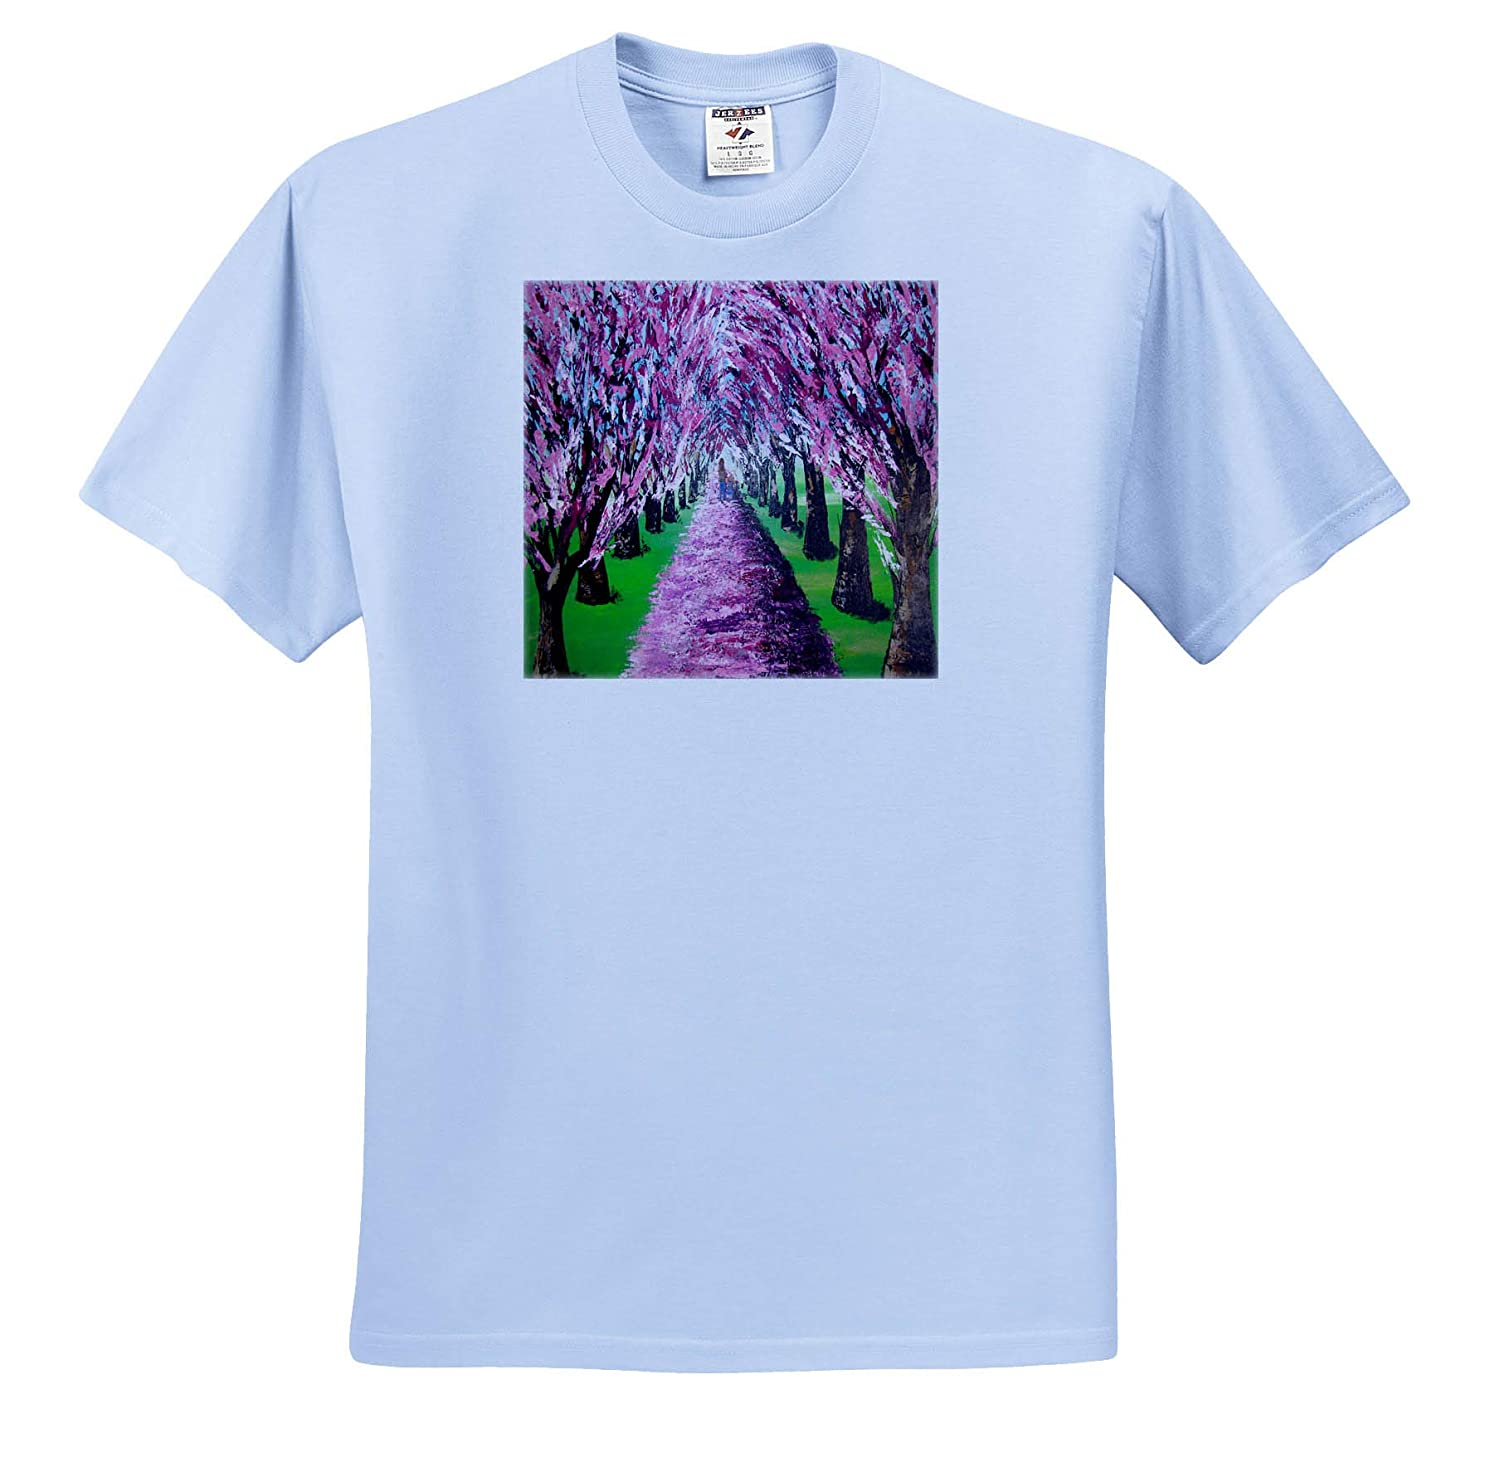 an Image of a Girl Picking Lilacs Trees - T-Shirts 3dRose Art by Mandy Joy People Girls